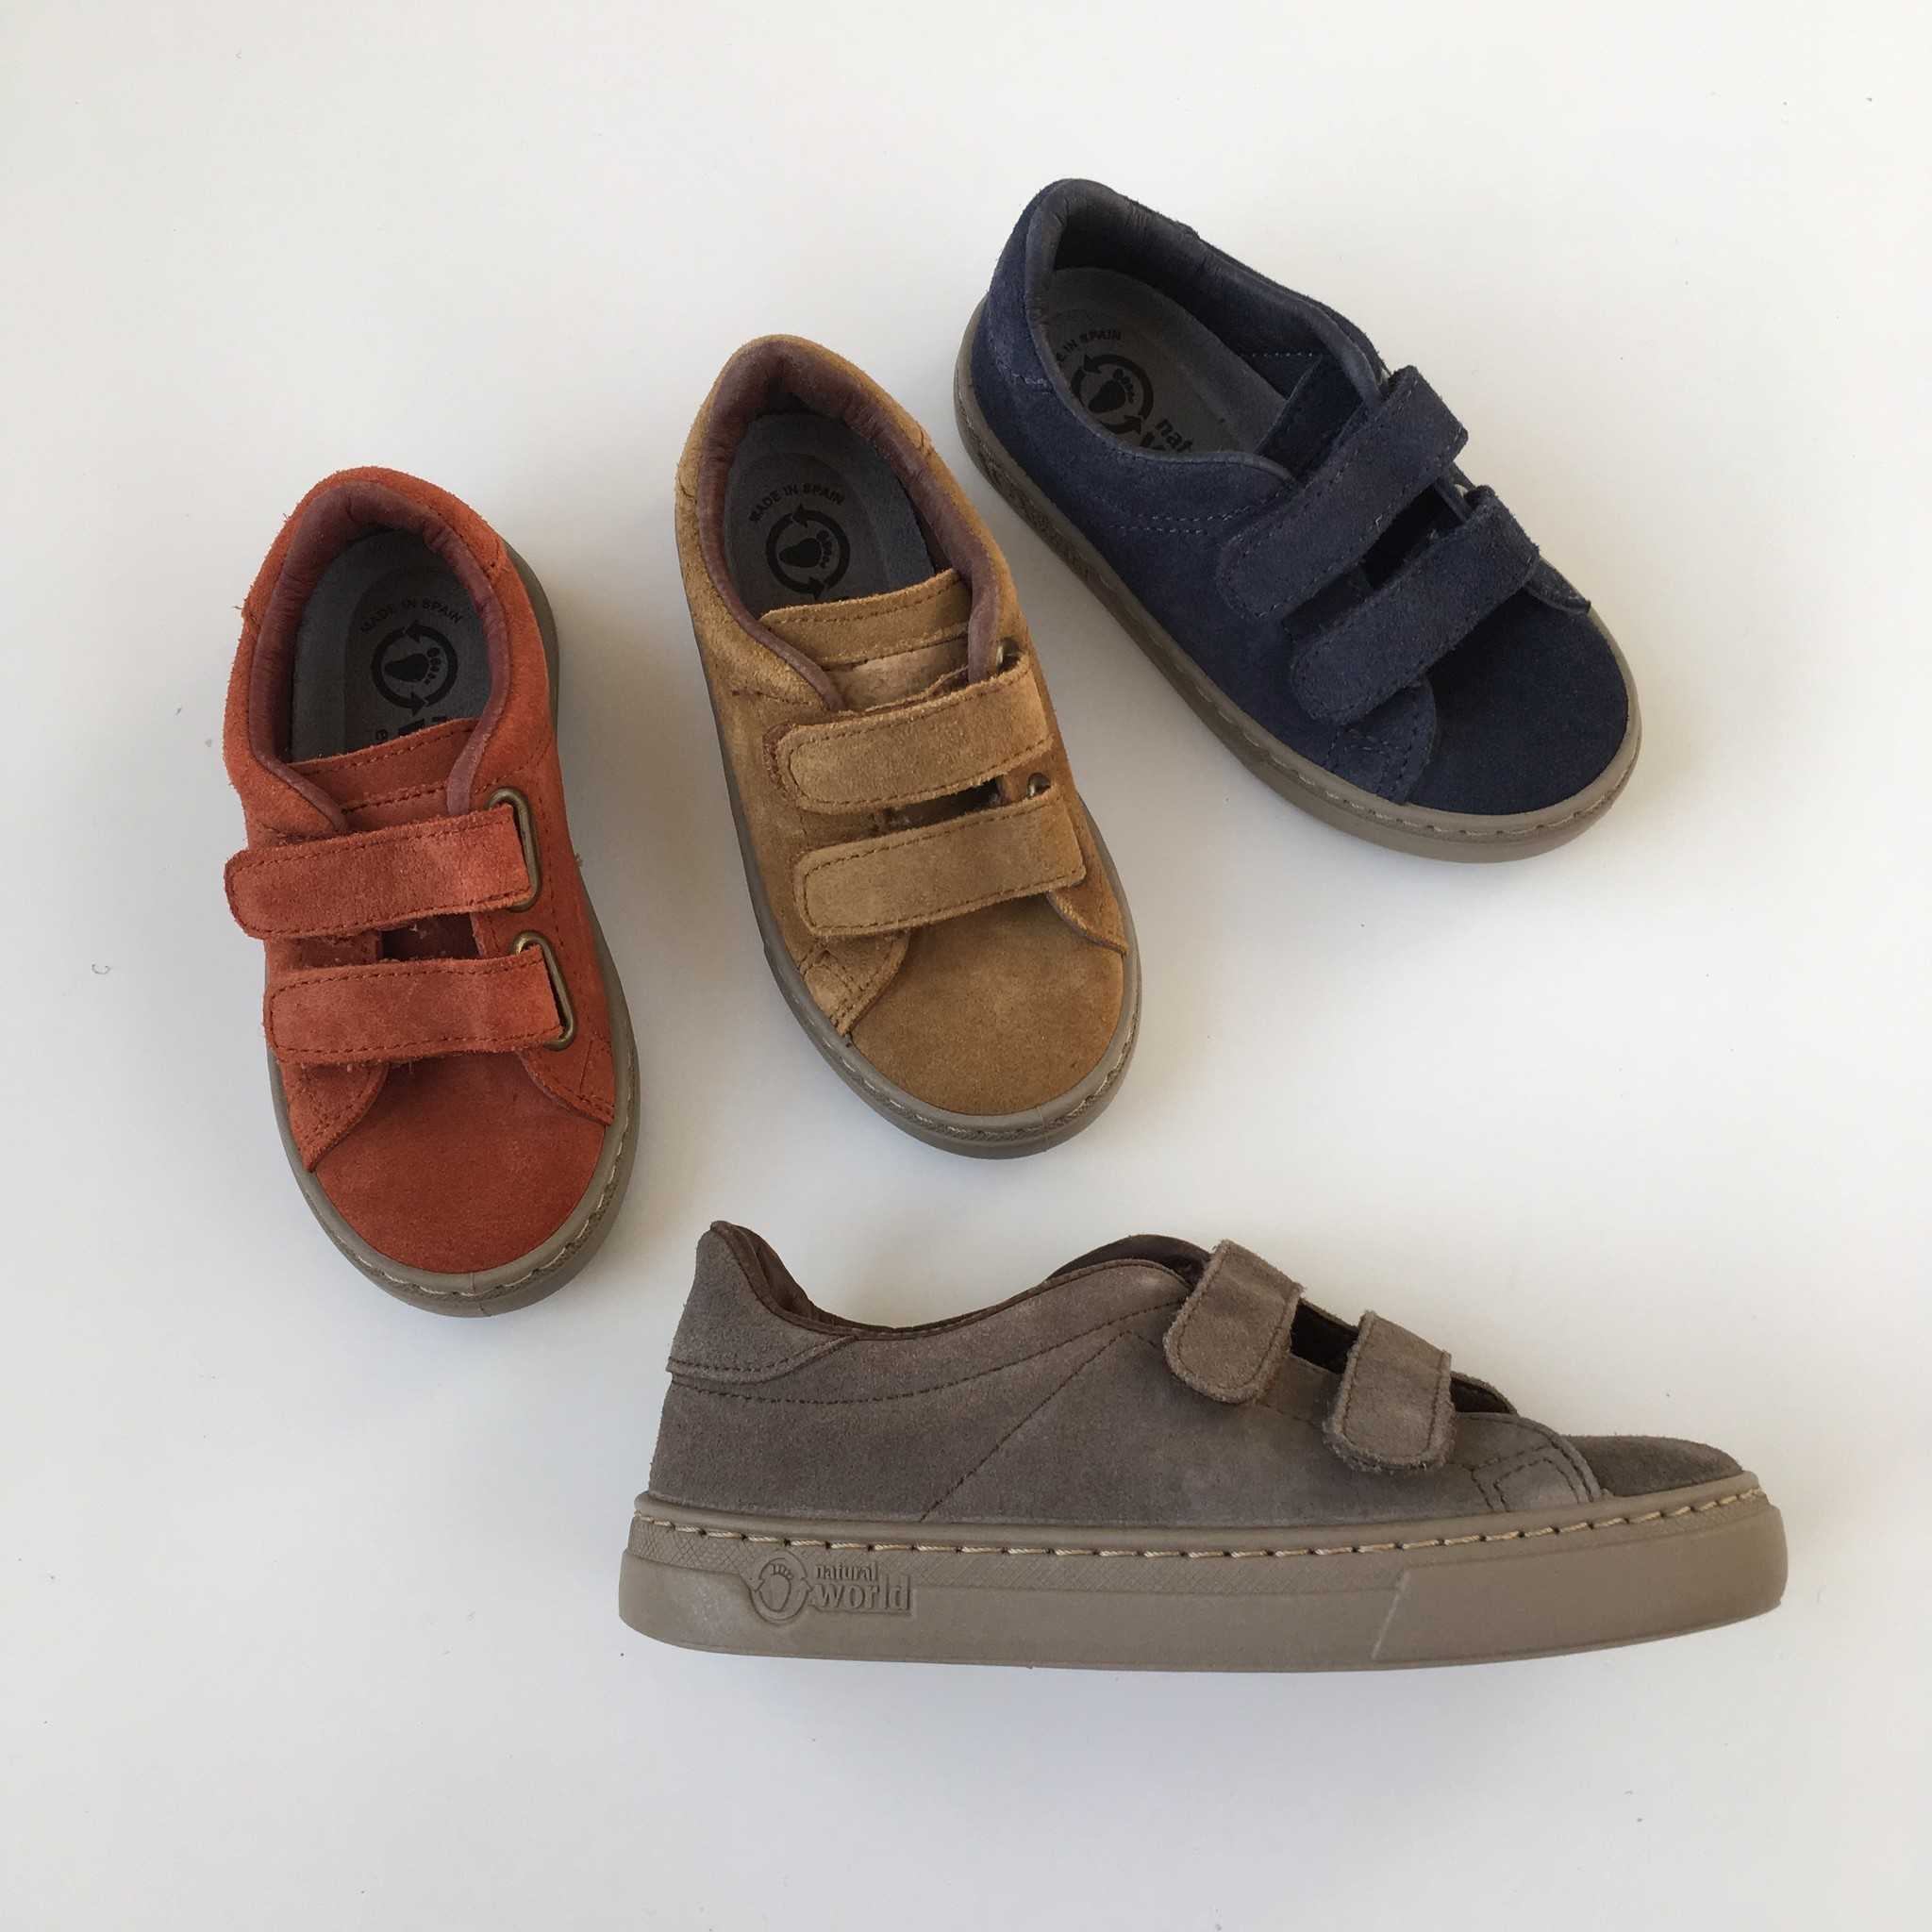 NATURAL WORLD suede eco kinder sneakers TEO - 100% natuur rubberen zool -  mosterd - 25 tm 38